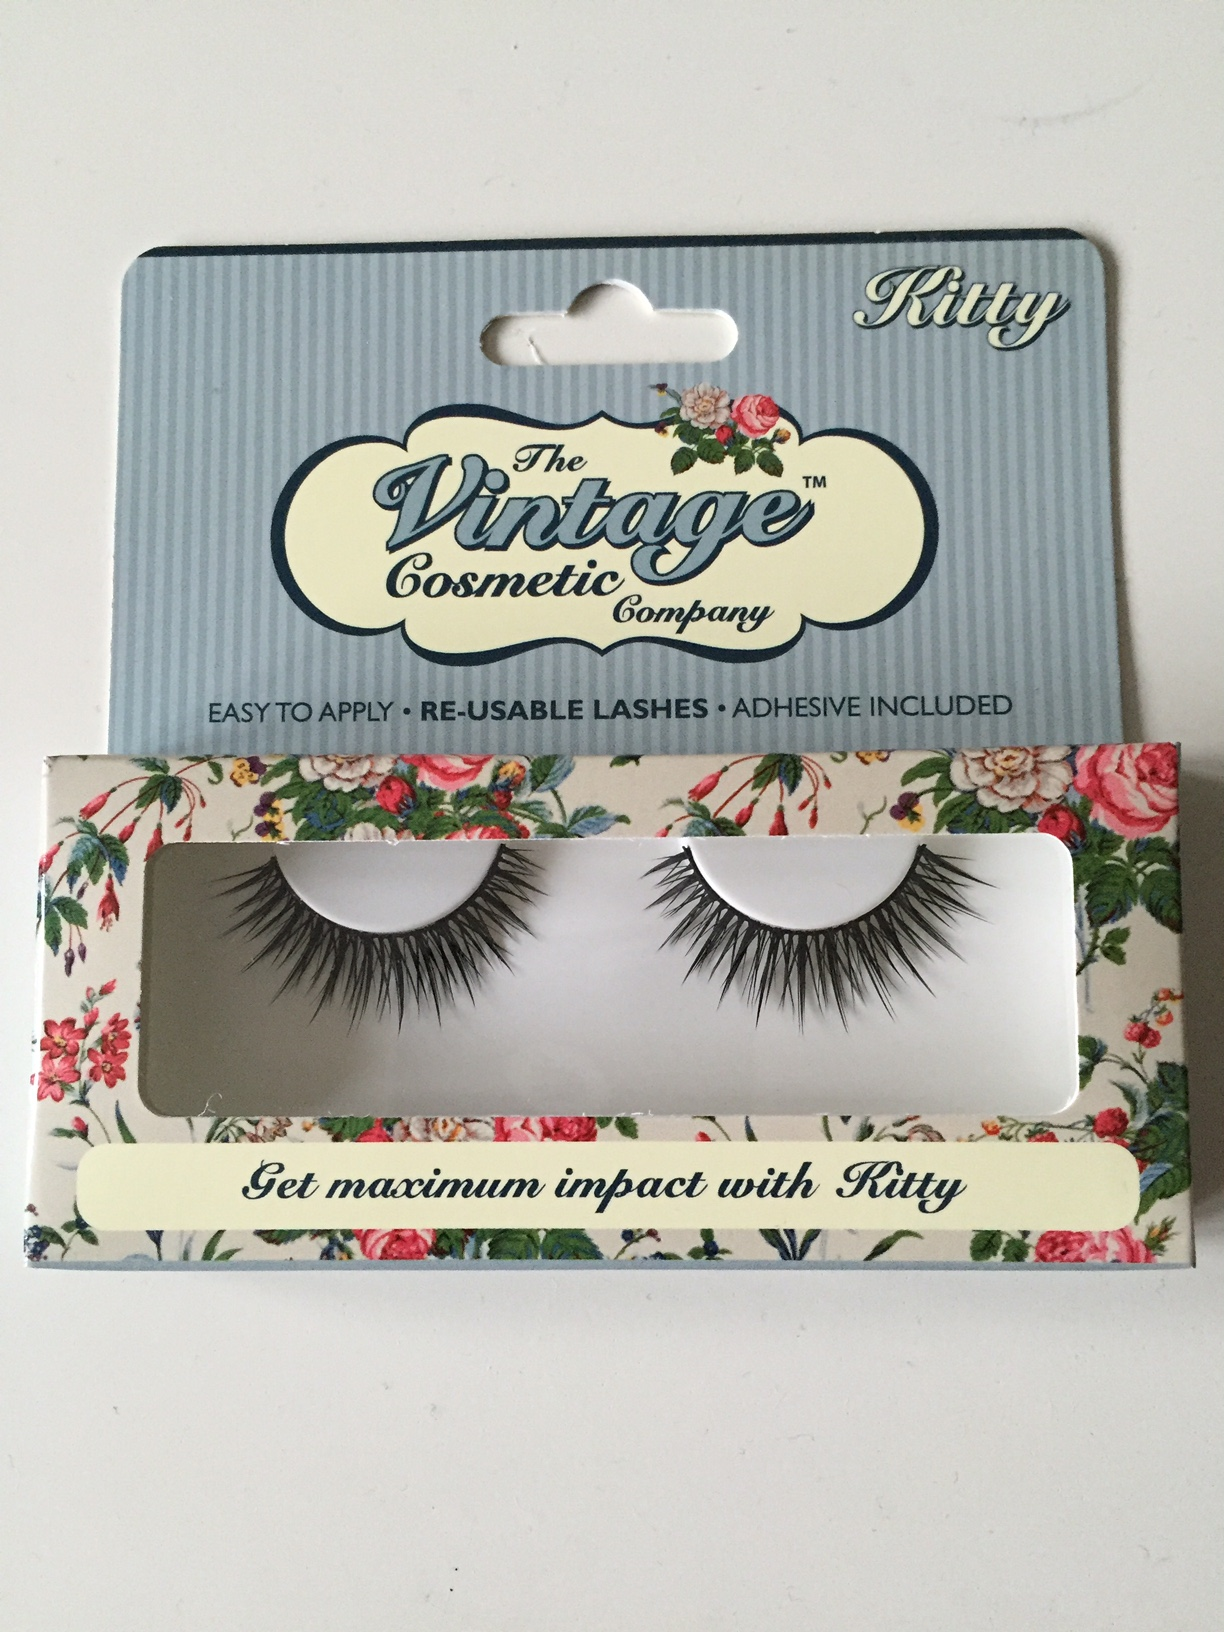 Christmas Gift Guide: Gifts With Vintage Cosmetic Company – The 1950s Twist